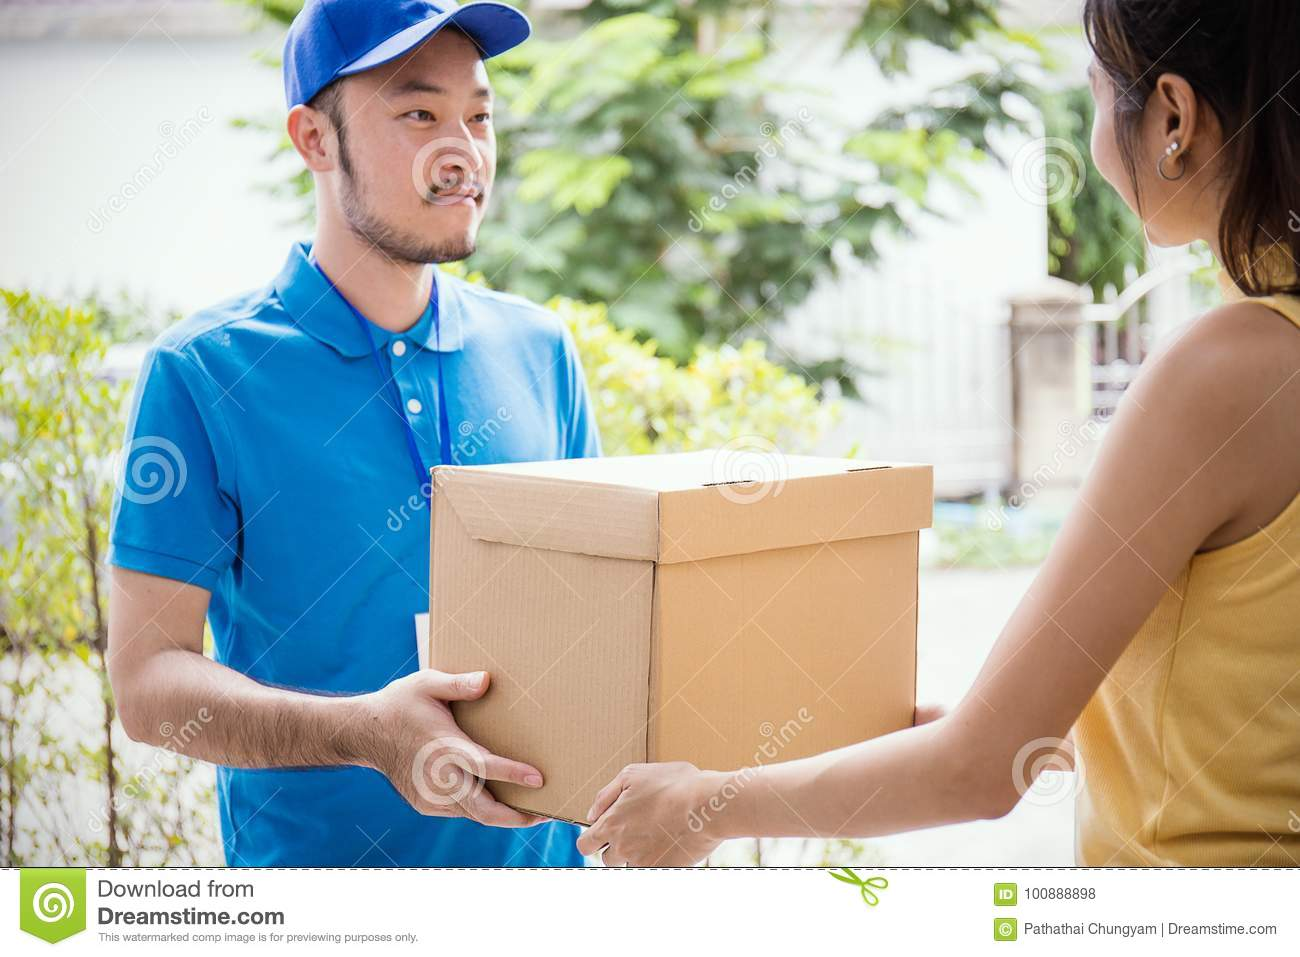 Woman accepting receive a delivery of boxes from delivery asian man